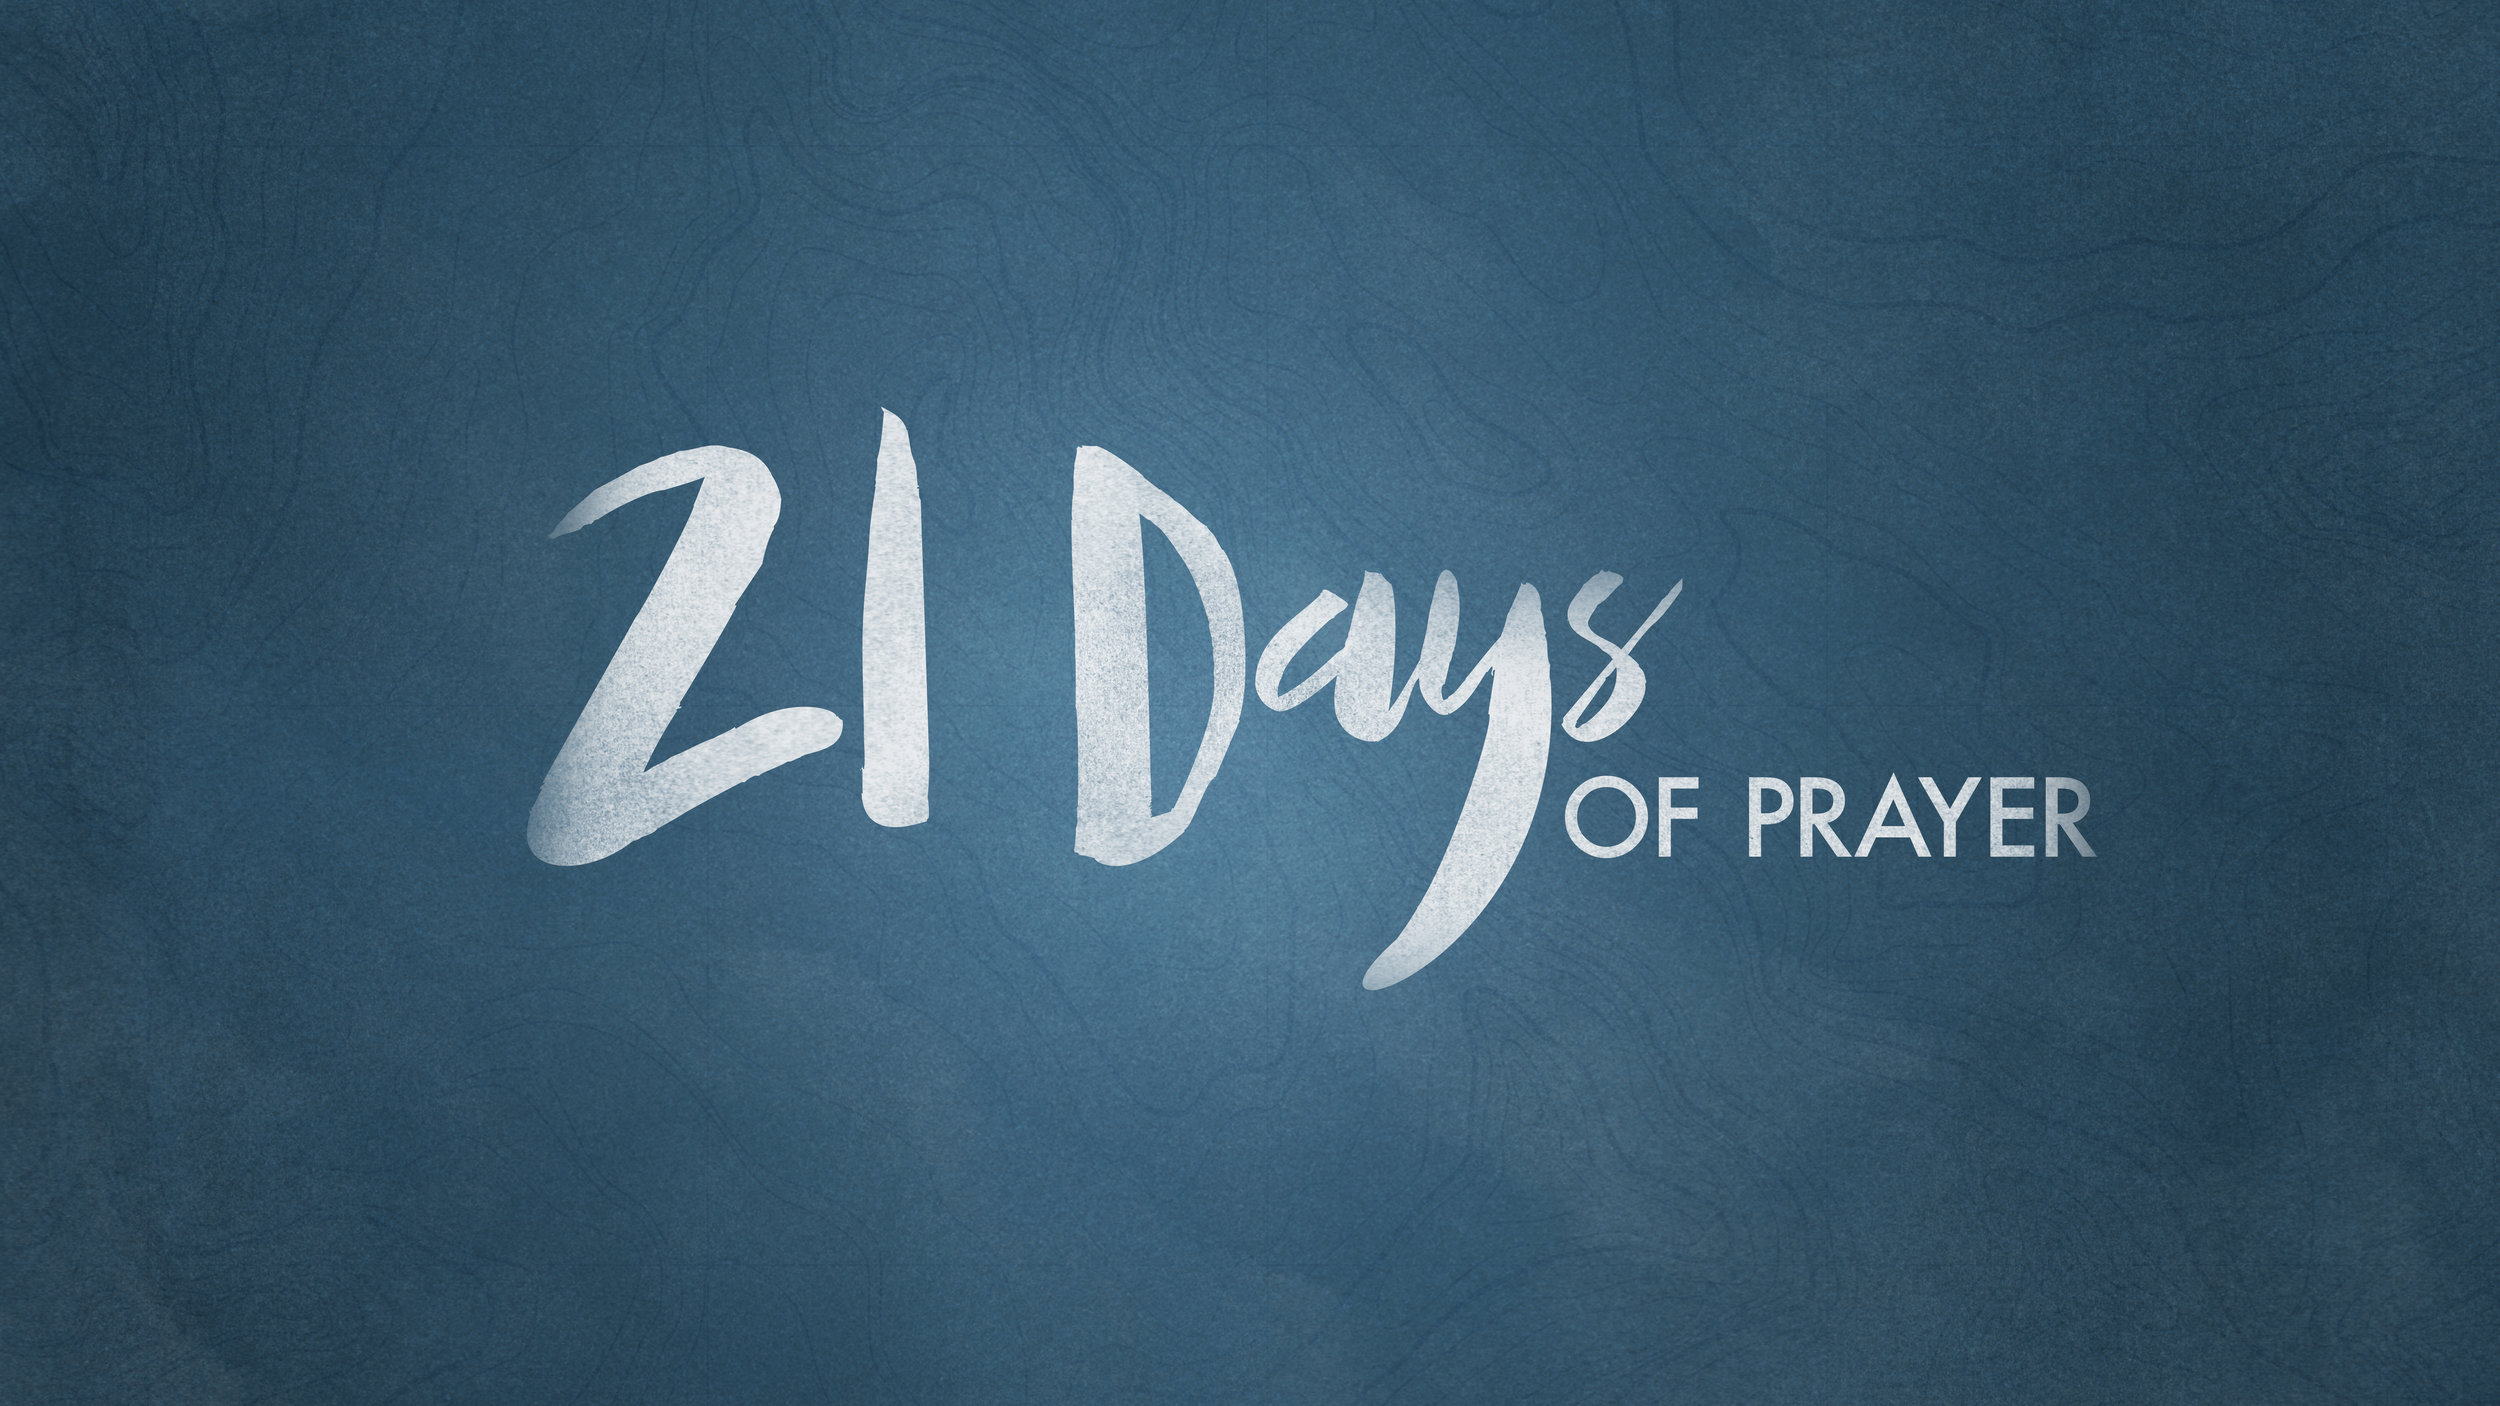 21 Days of Prayer - Watch and Listen